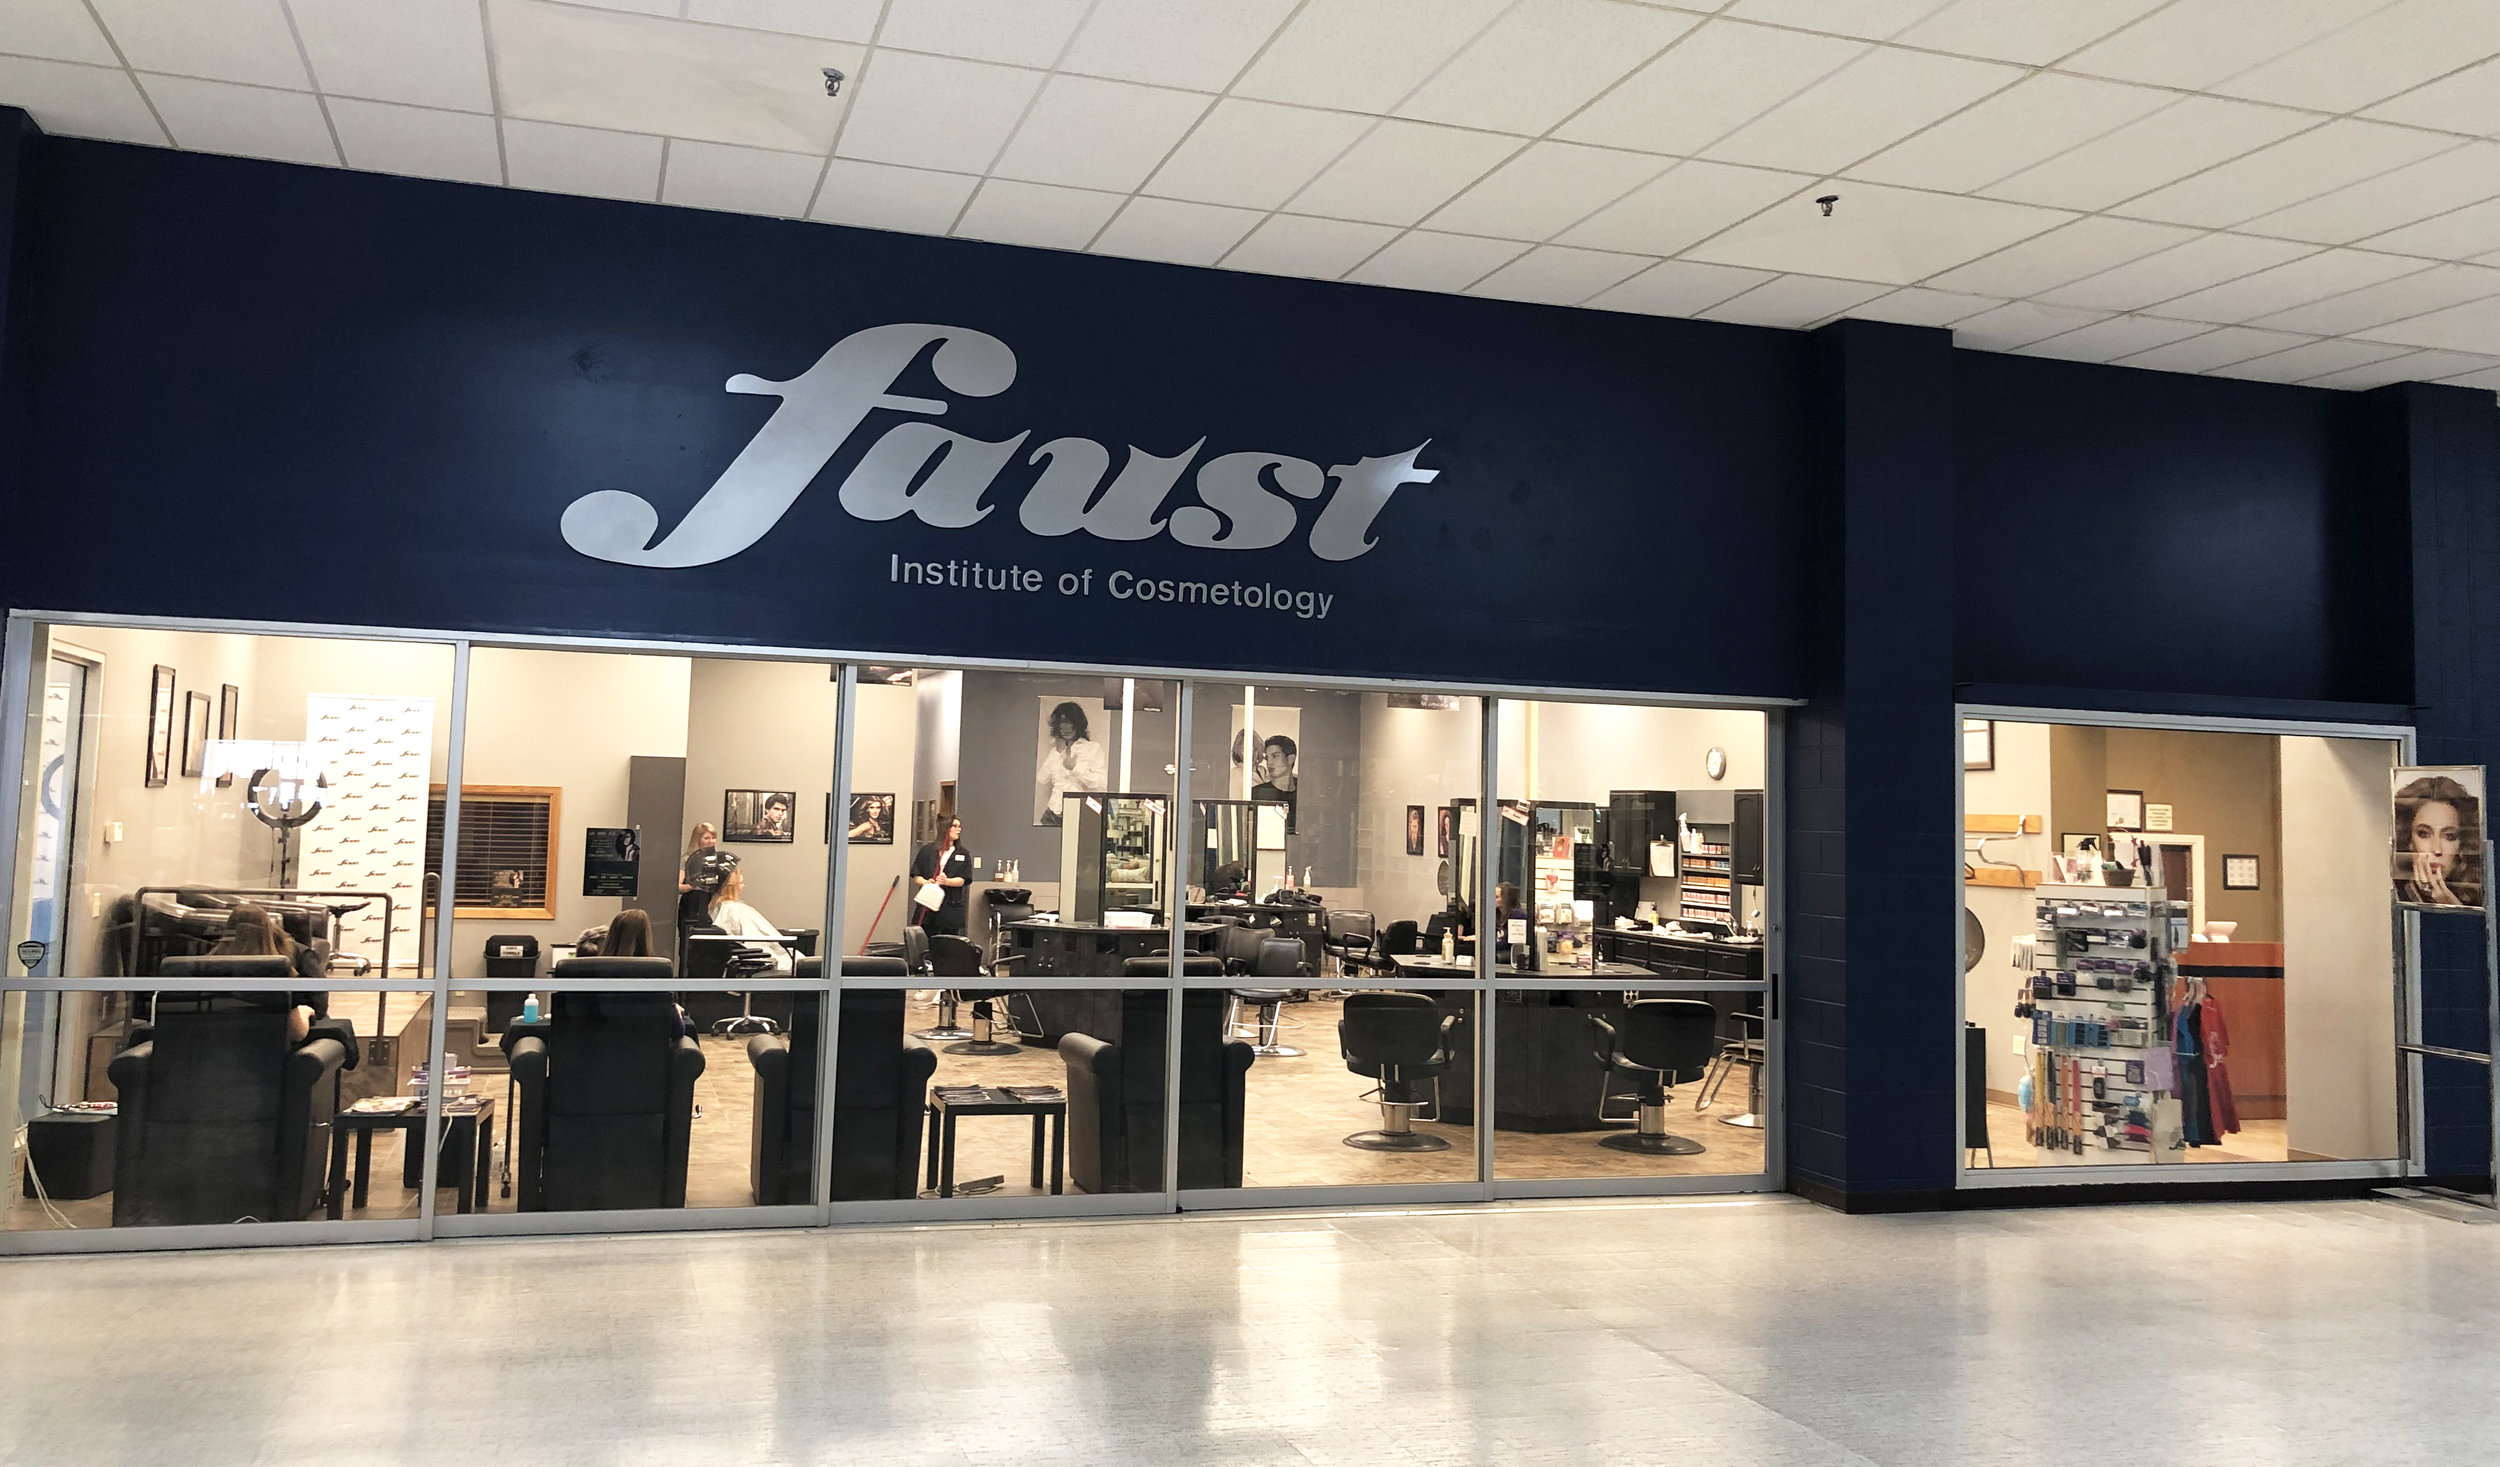 Faust Institute of Cosmetology: - Enjoy discounted services from trained students. Call for an appointment 712-336-3518